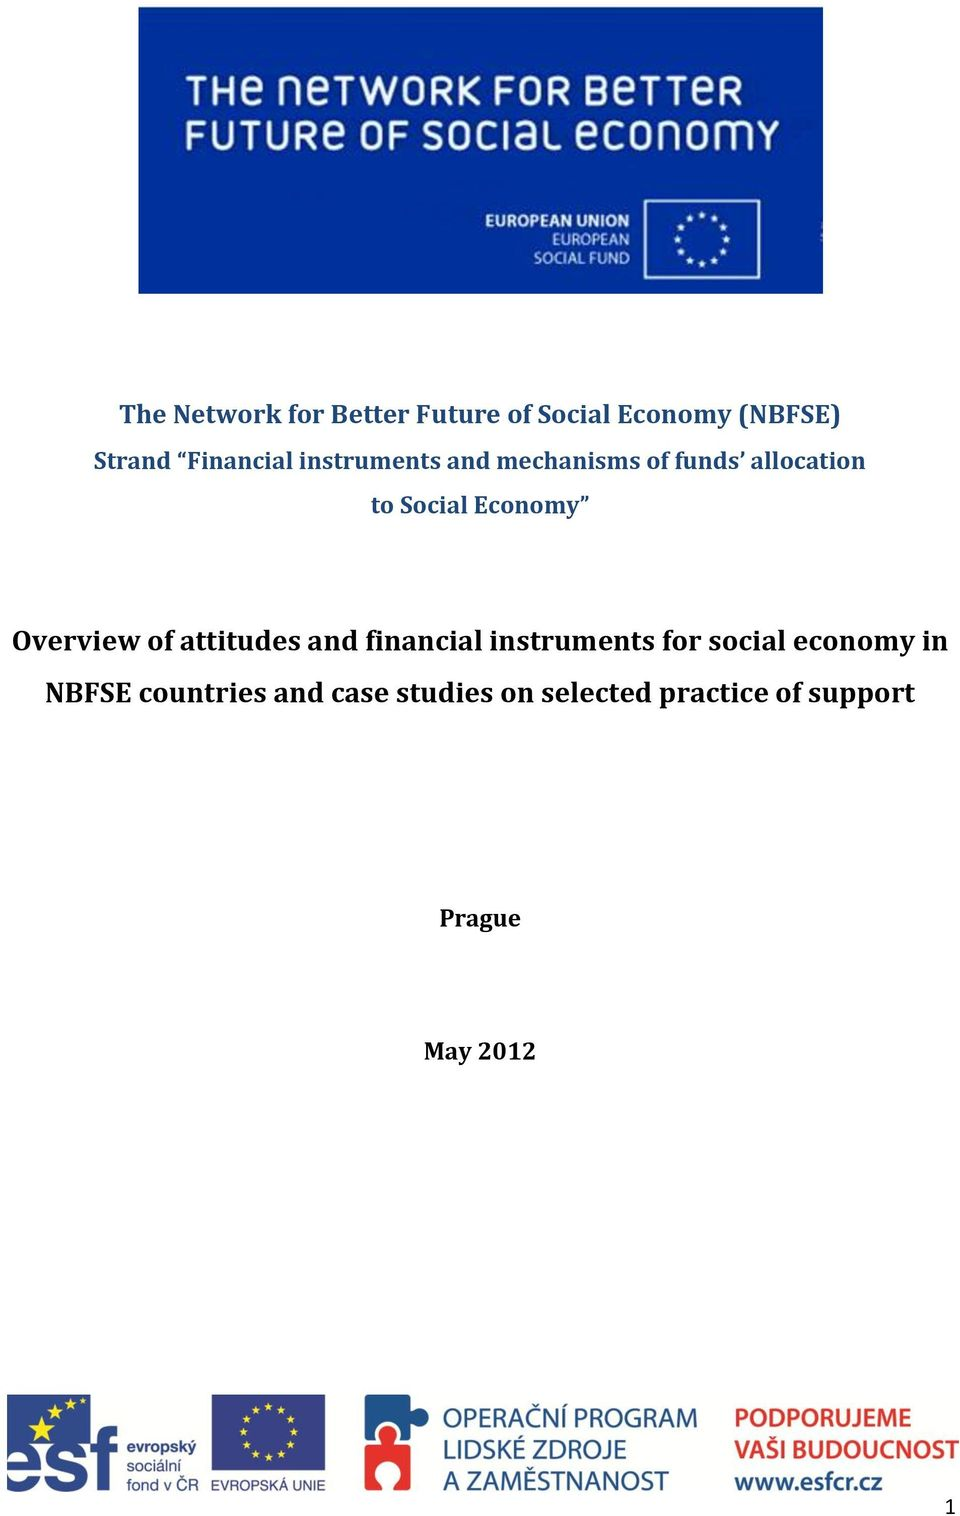 Overview of attitudes and financial instruments for social economy in